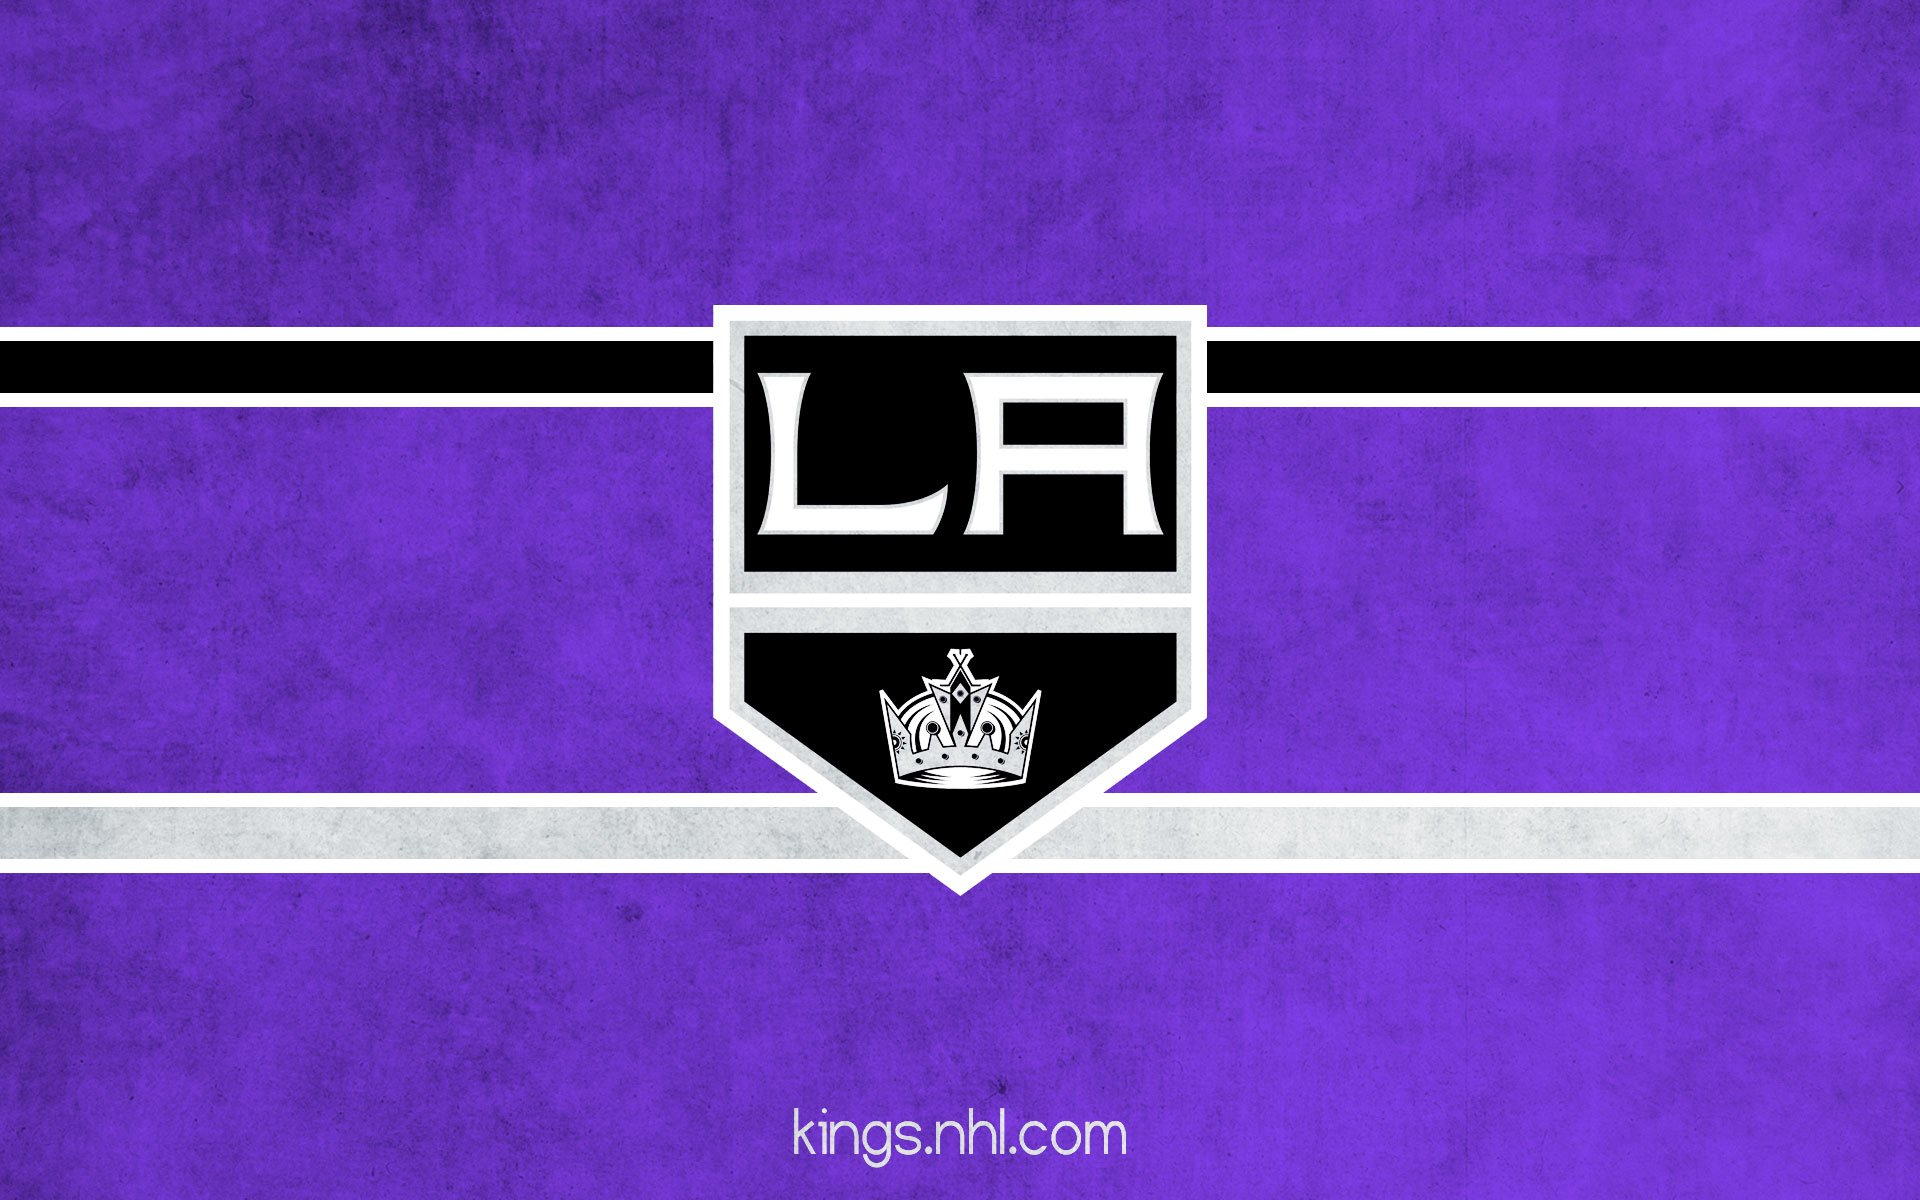 Nhl Iphone Wallpaper Los Angeles Kings Full Hd Wallpaper And Background Image